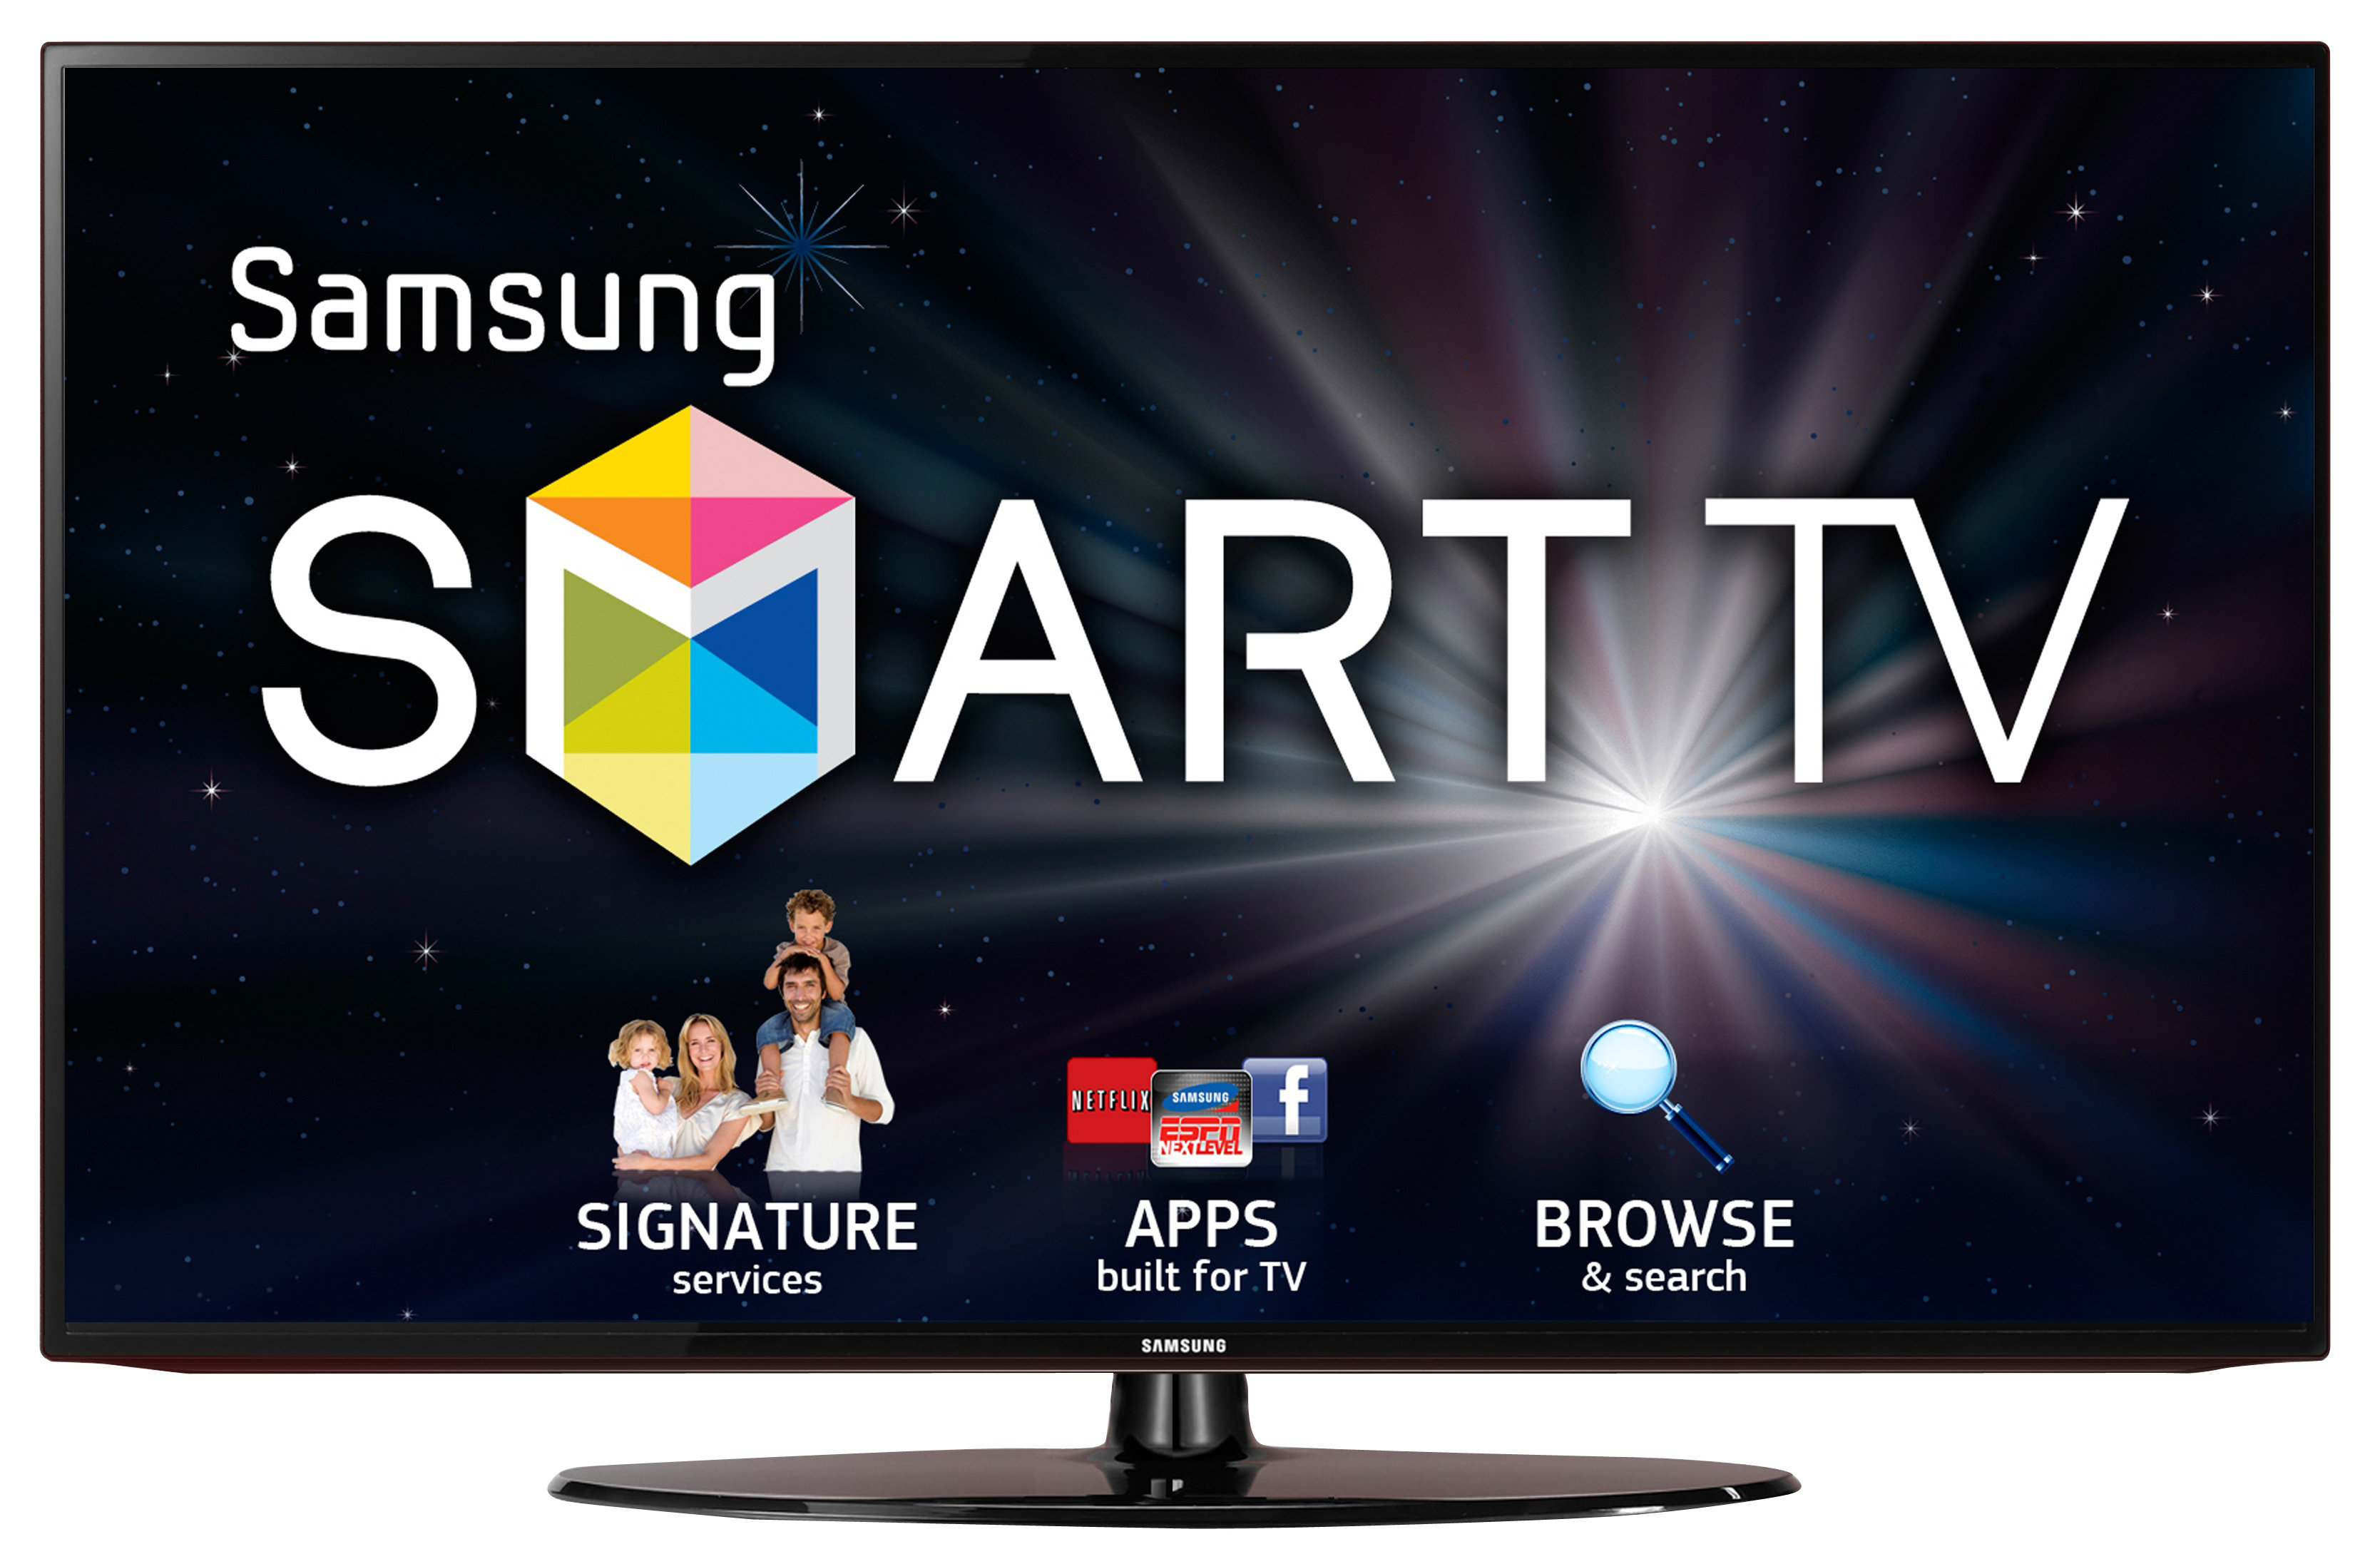 Samsung Un40eh5300f 40 1080p 60hz Led Smart Hd Tv Wifi